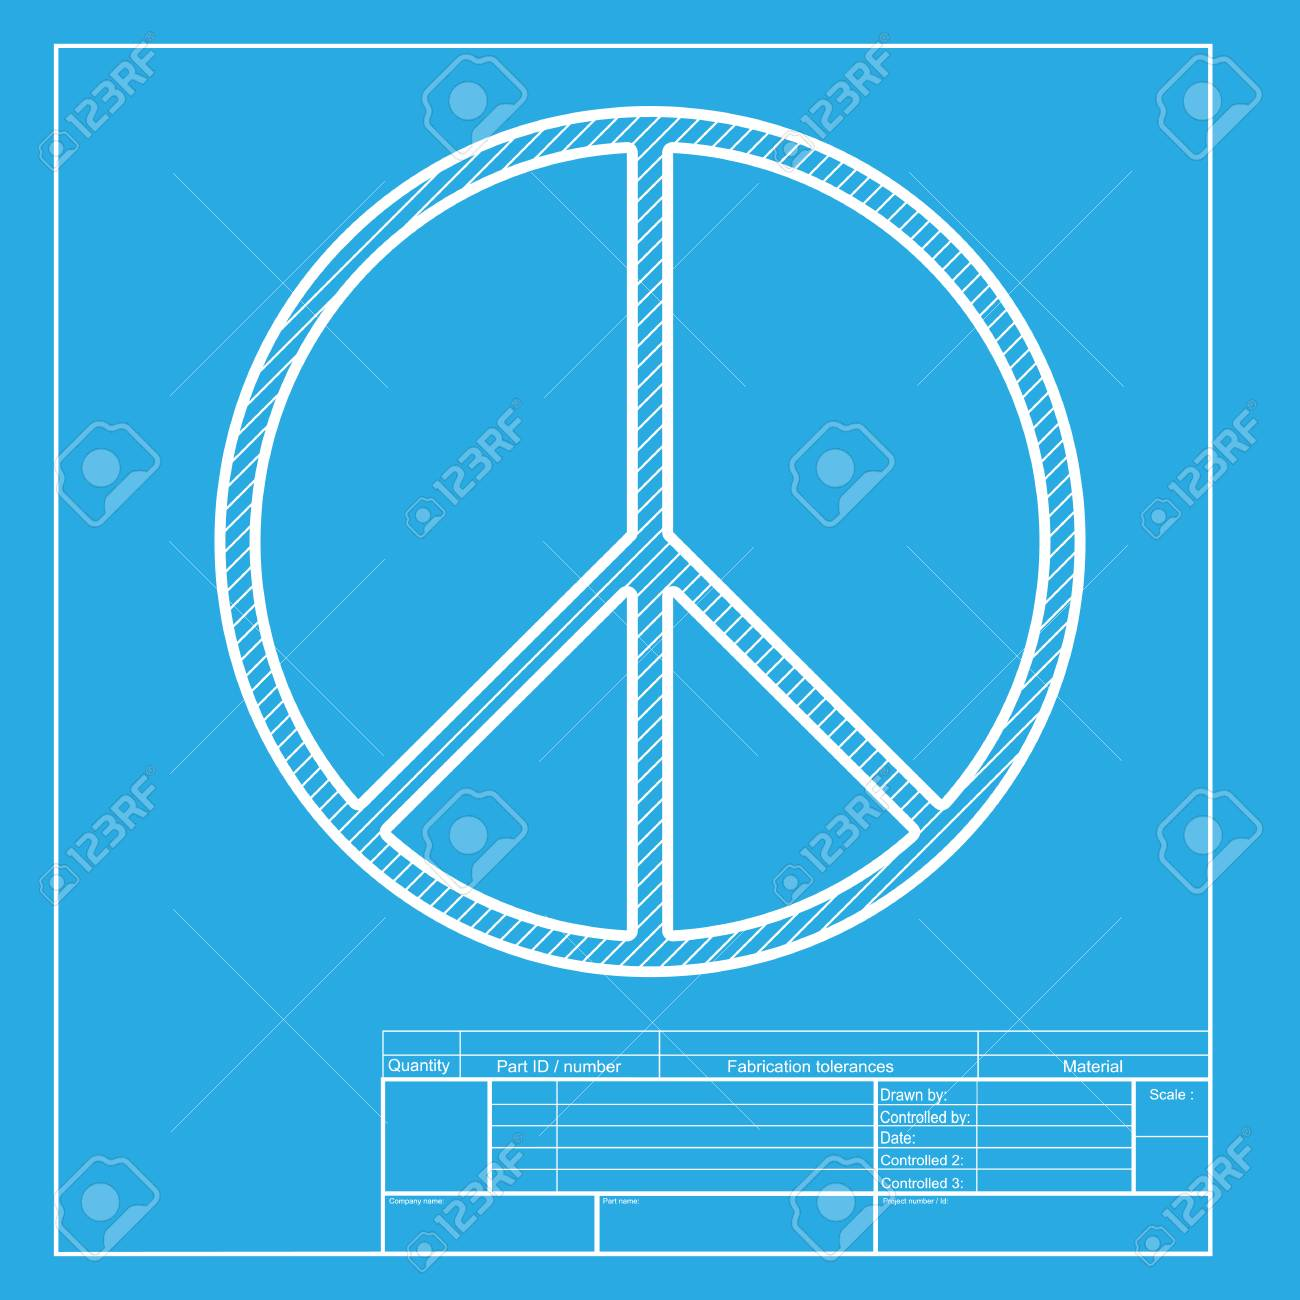 Peace sign illustration white section of icon on blueprint template peace sign illustration white section of icon on blueprint template stock vector 58755247 maxwellsz